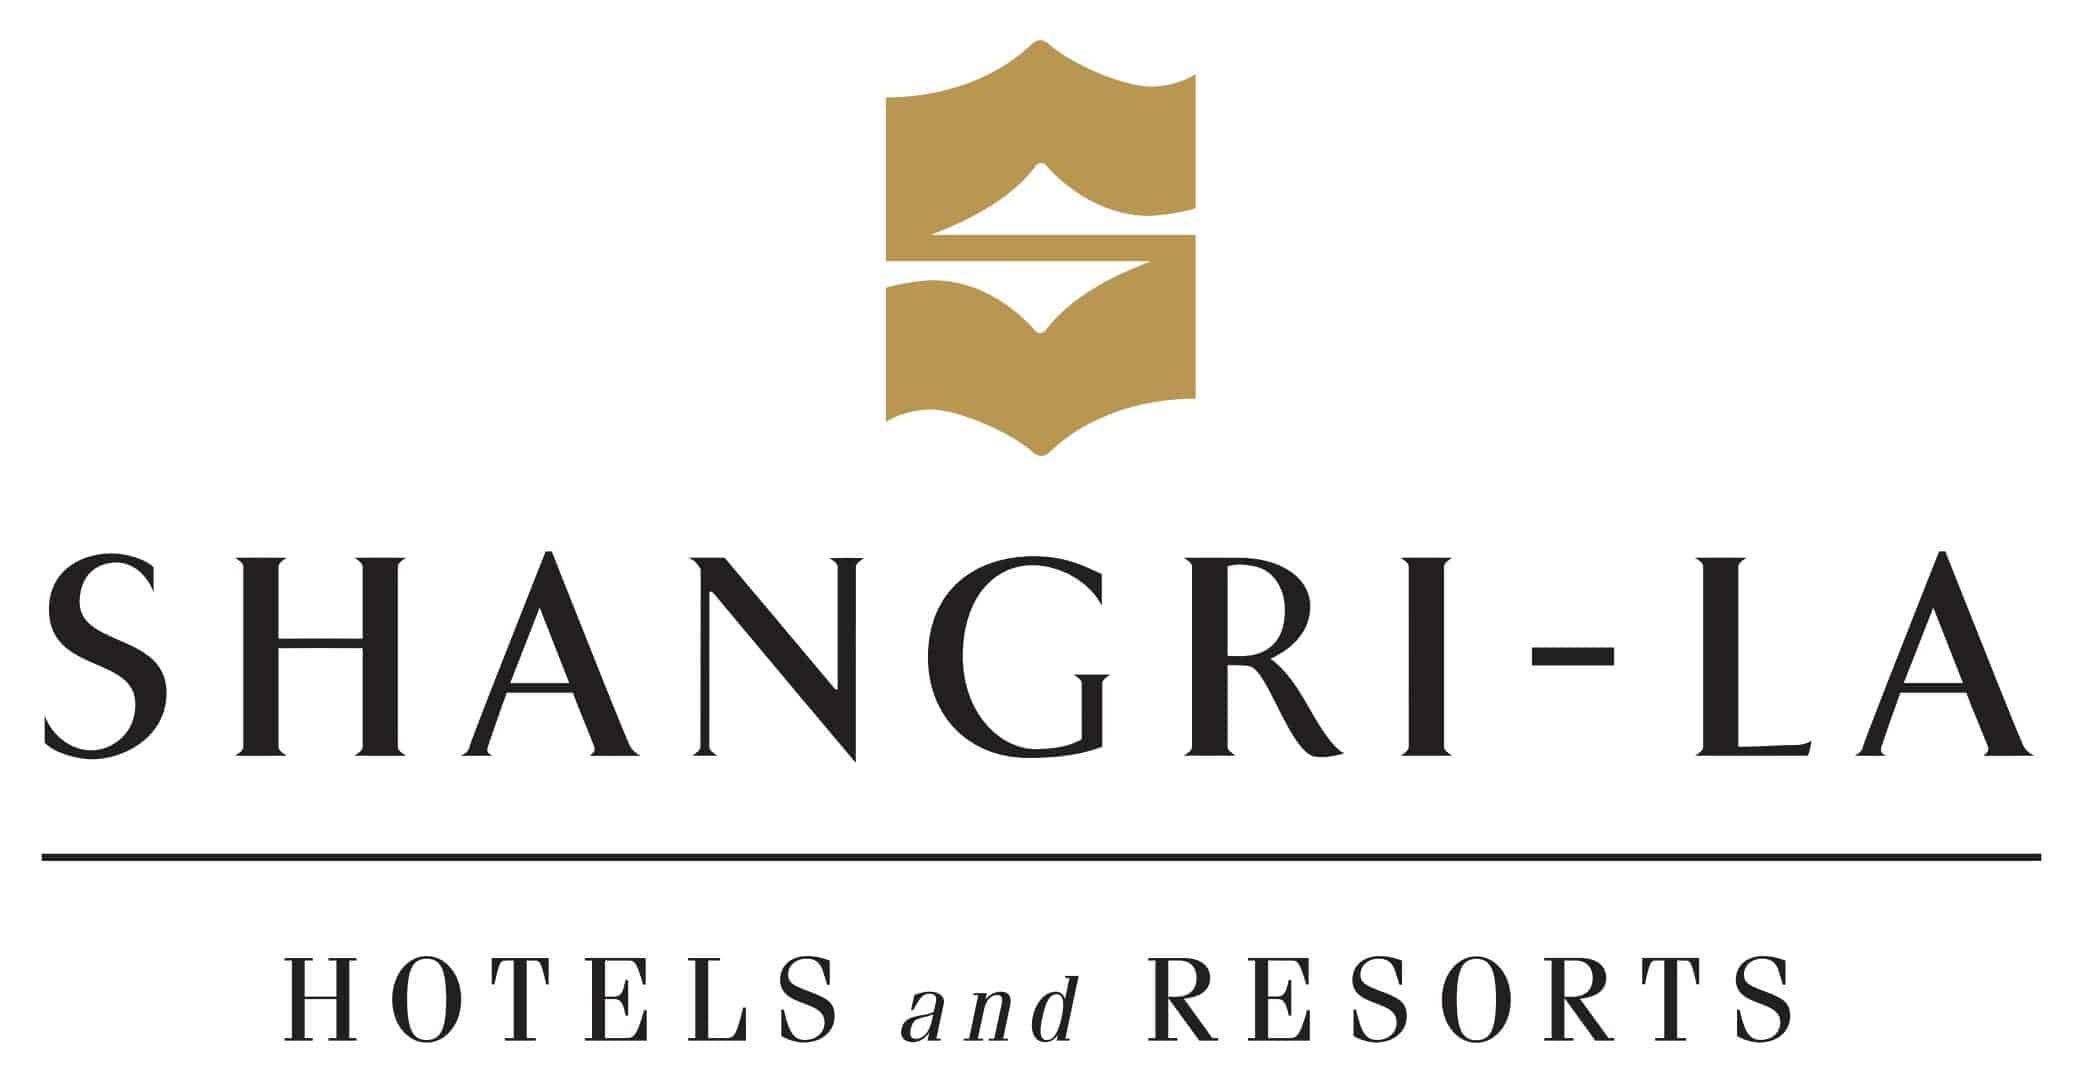 shangri la hotels and resots logo